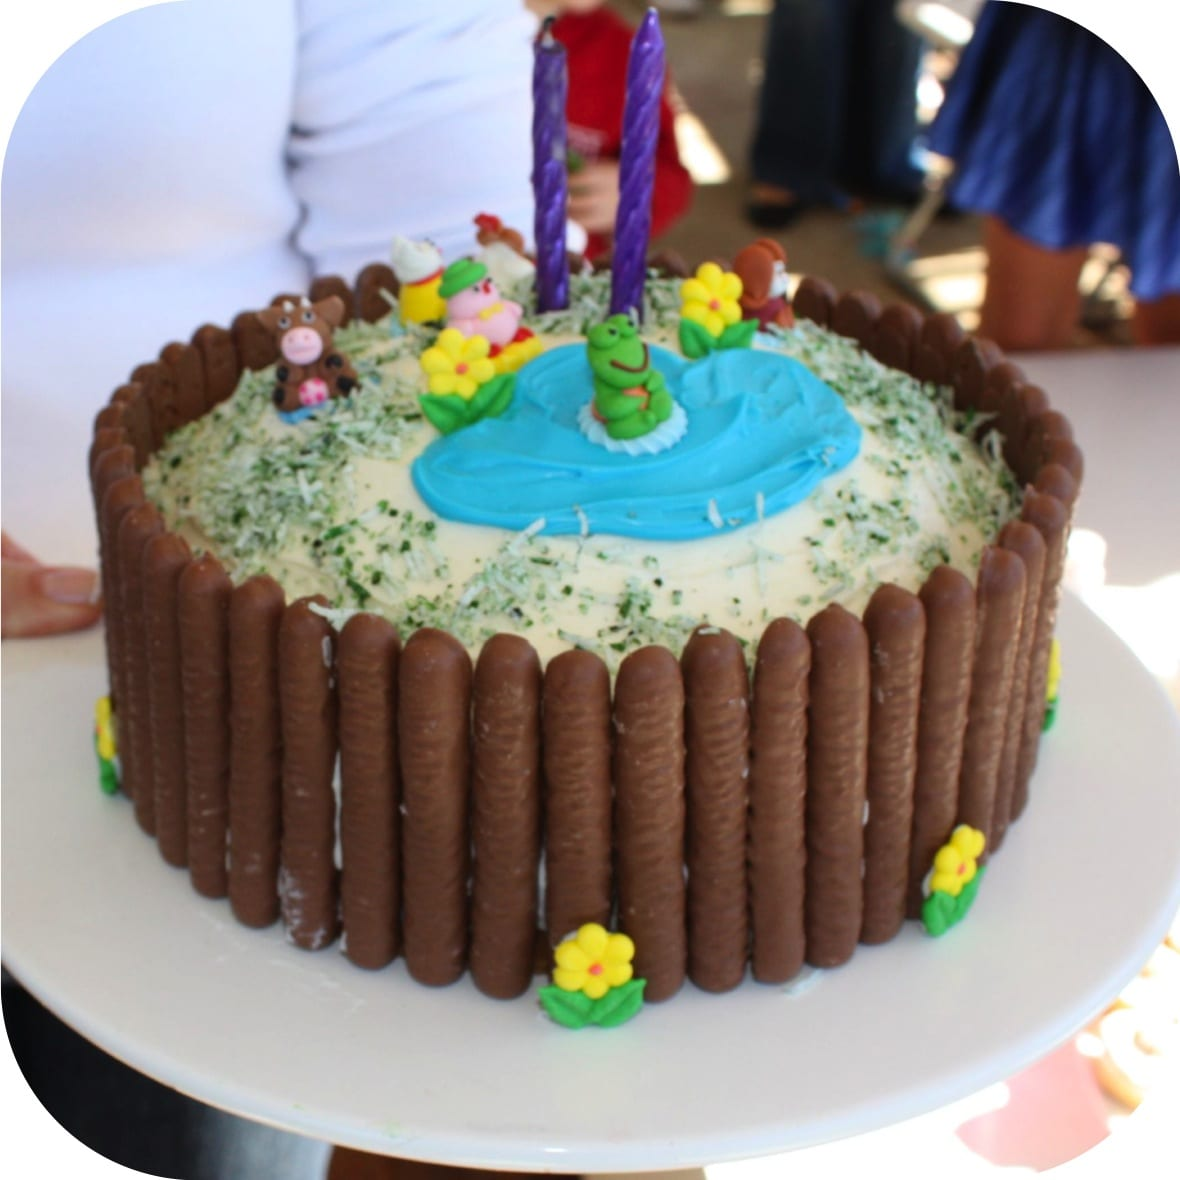 Simple Birthday Cake Designs For Baby Boy : Quick and simple kids birthday cake - ee i ee i oh ...